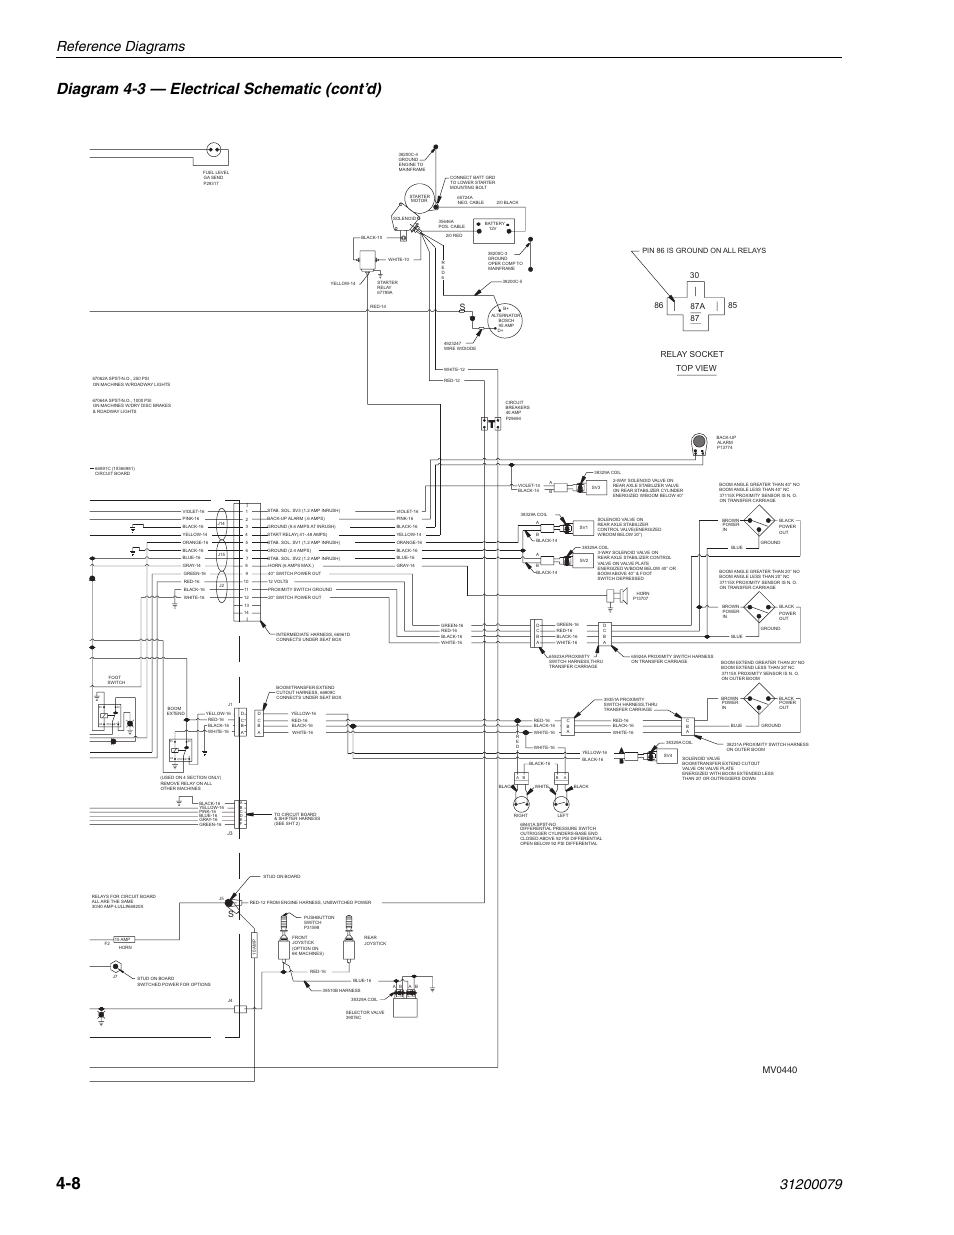 diagram 4 3 electrical schematic cont d reference diagrams rh manualsdir com